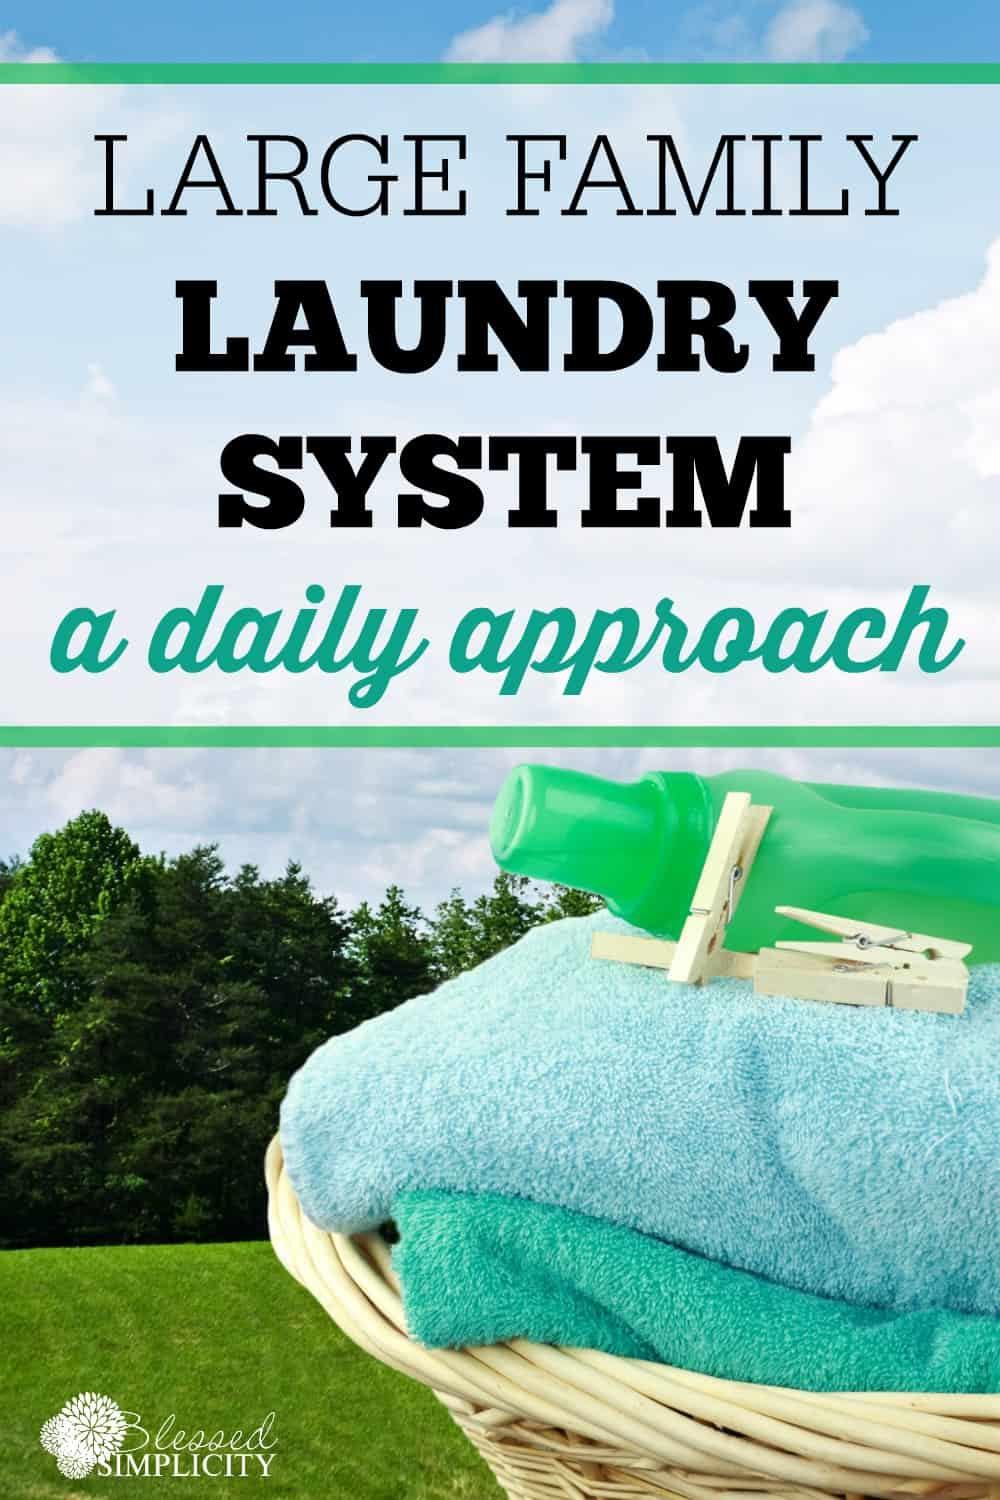 Large family laundry a daily approach blessed simplicity for Large family laundry